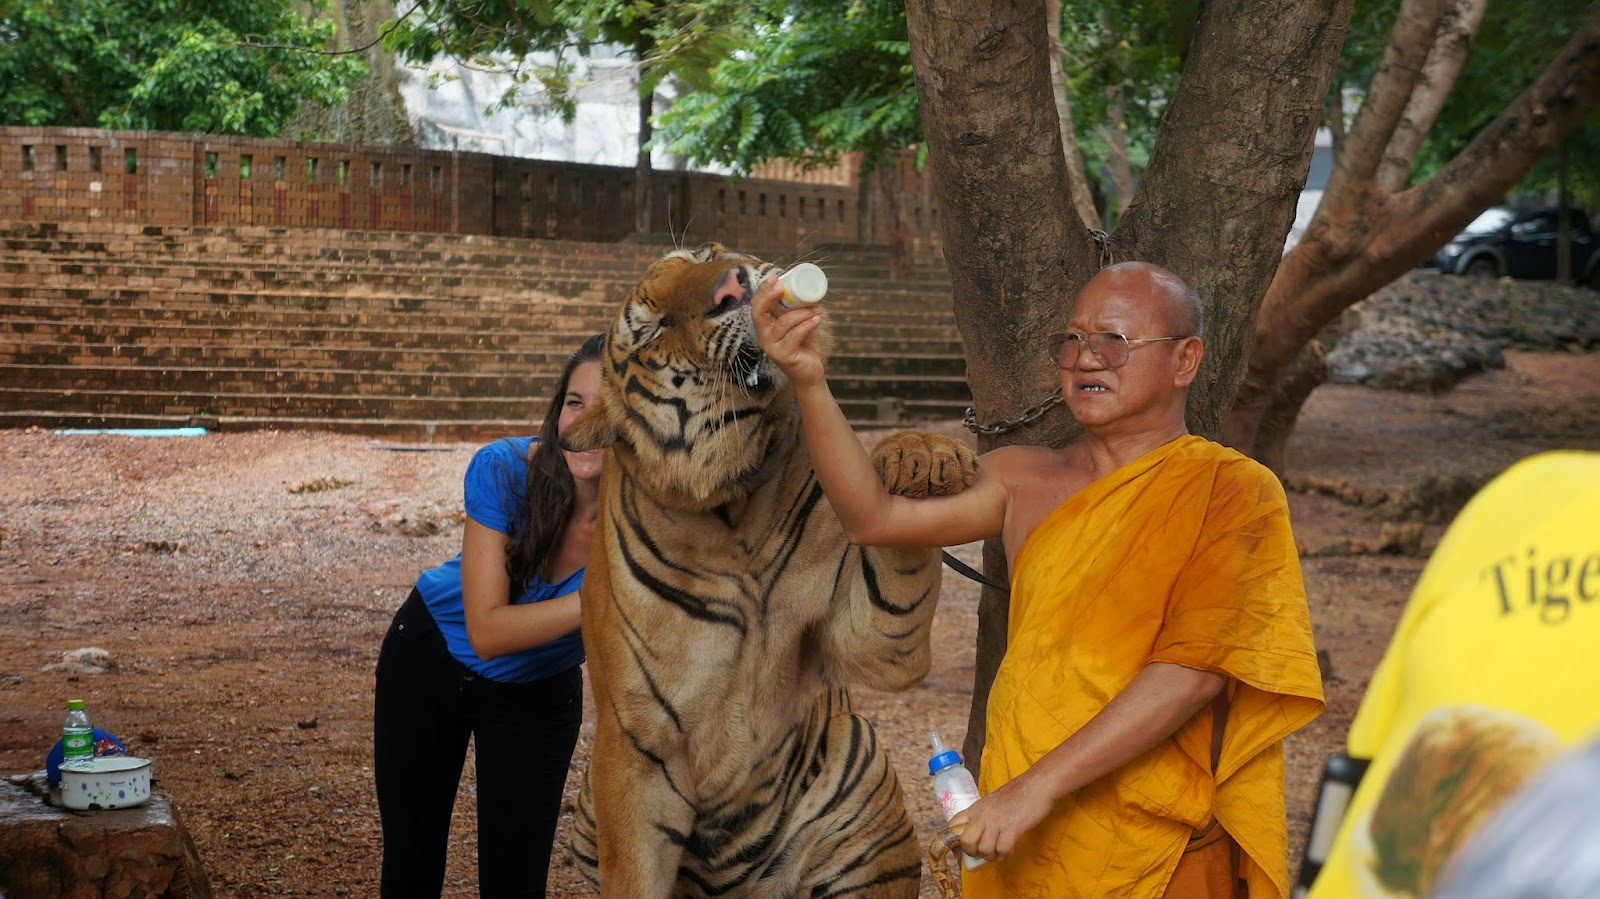 A monk feeding the largest tiger in the sanctuary